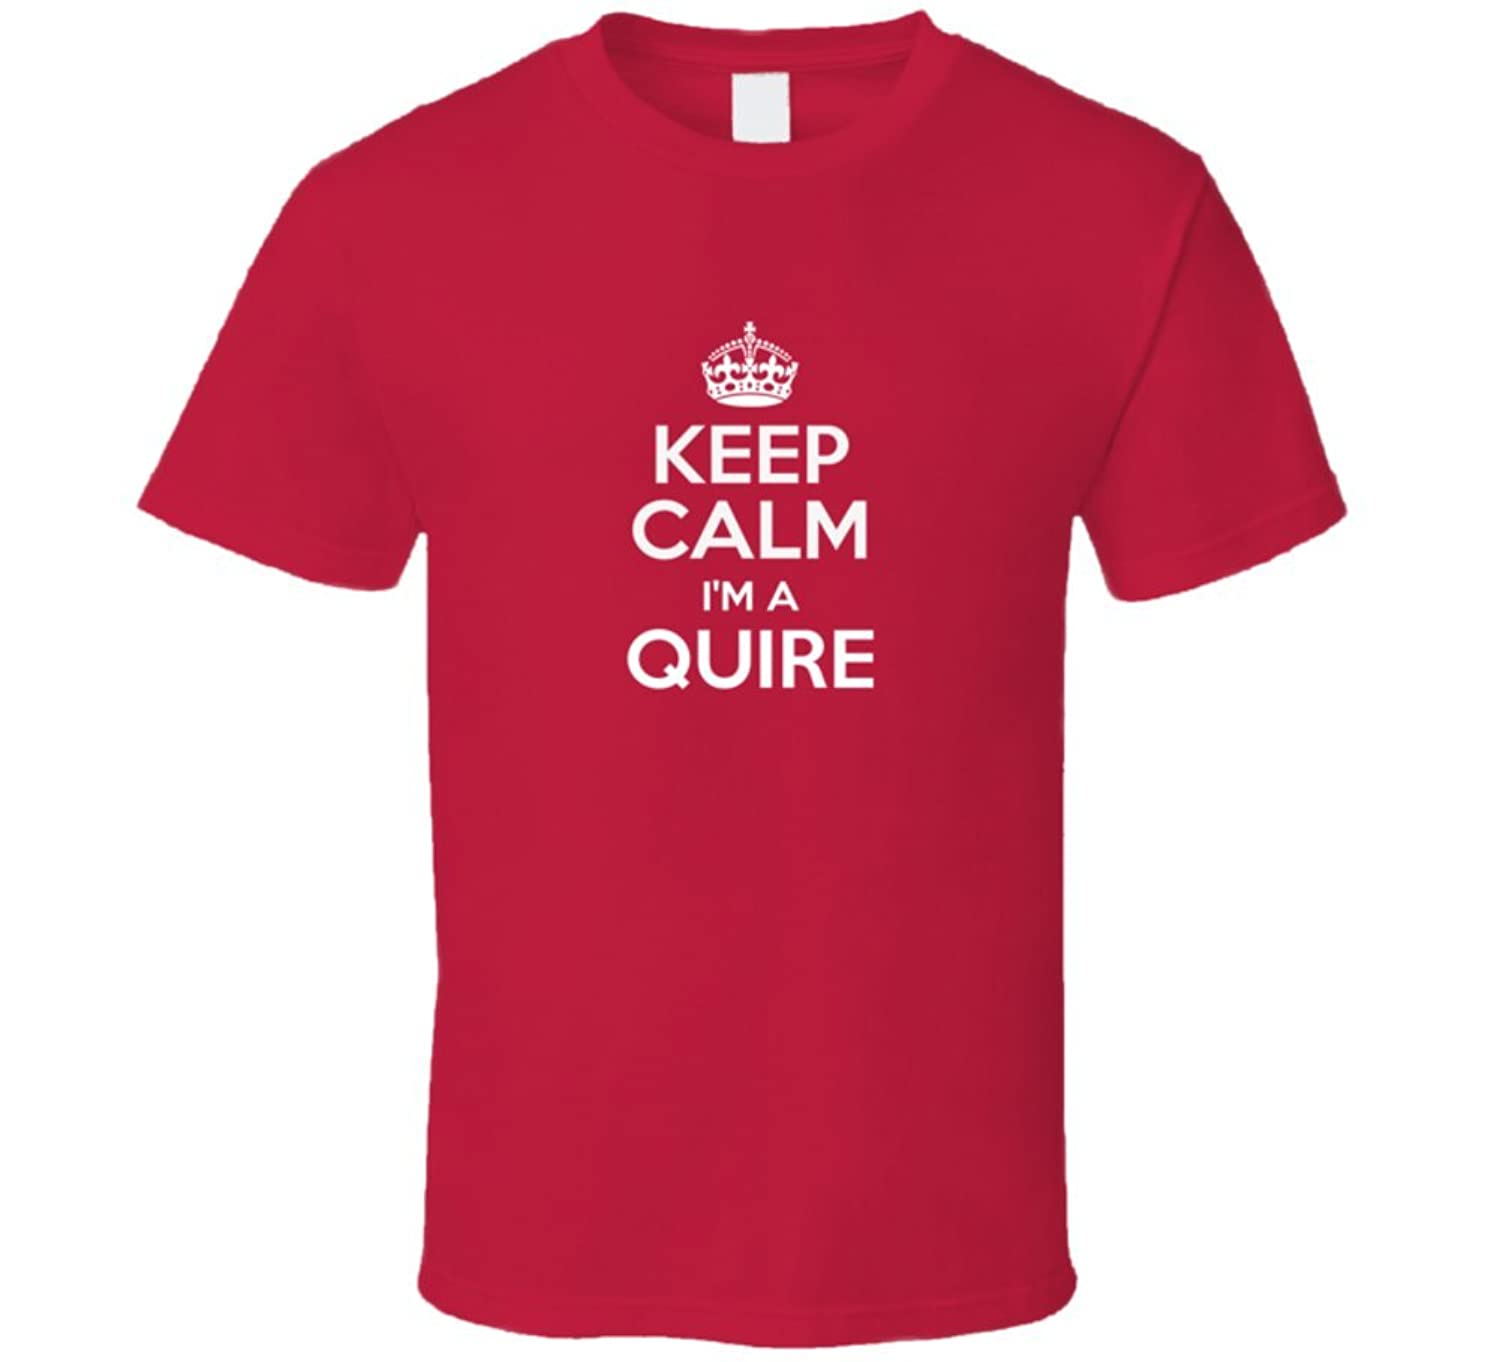 Подробнее о Quire Keep Calm Parody Family Tee T Shirt s quire станок для бритья s quire ra83yellow